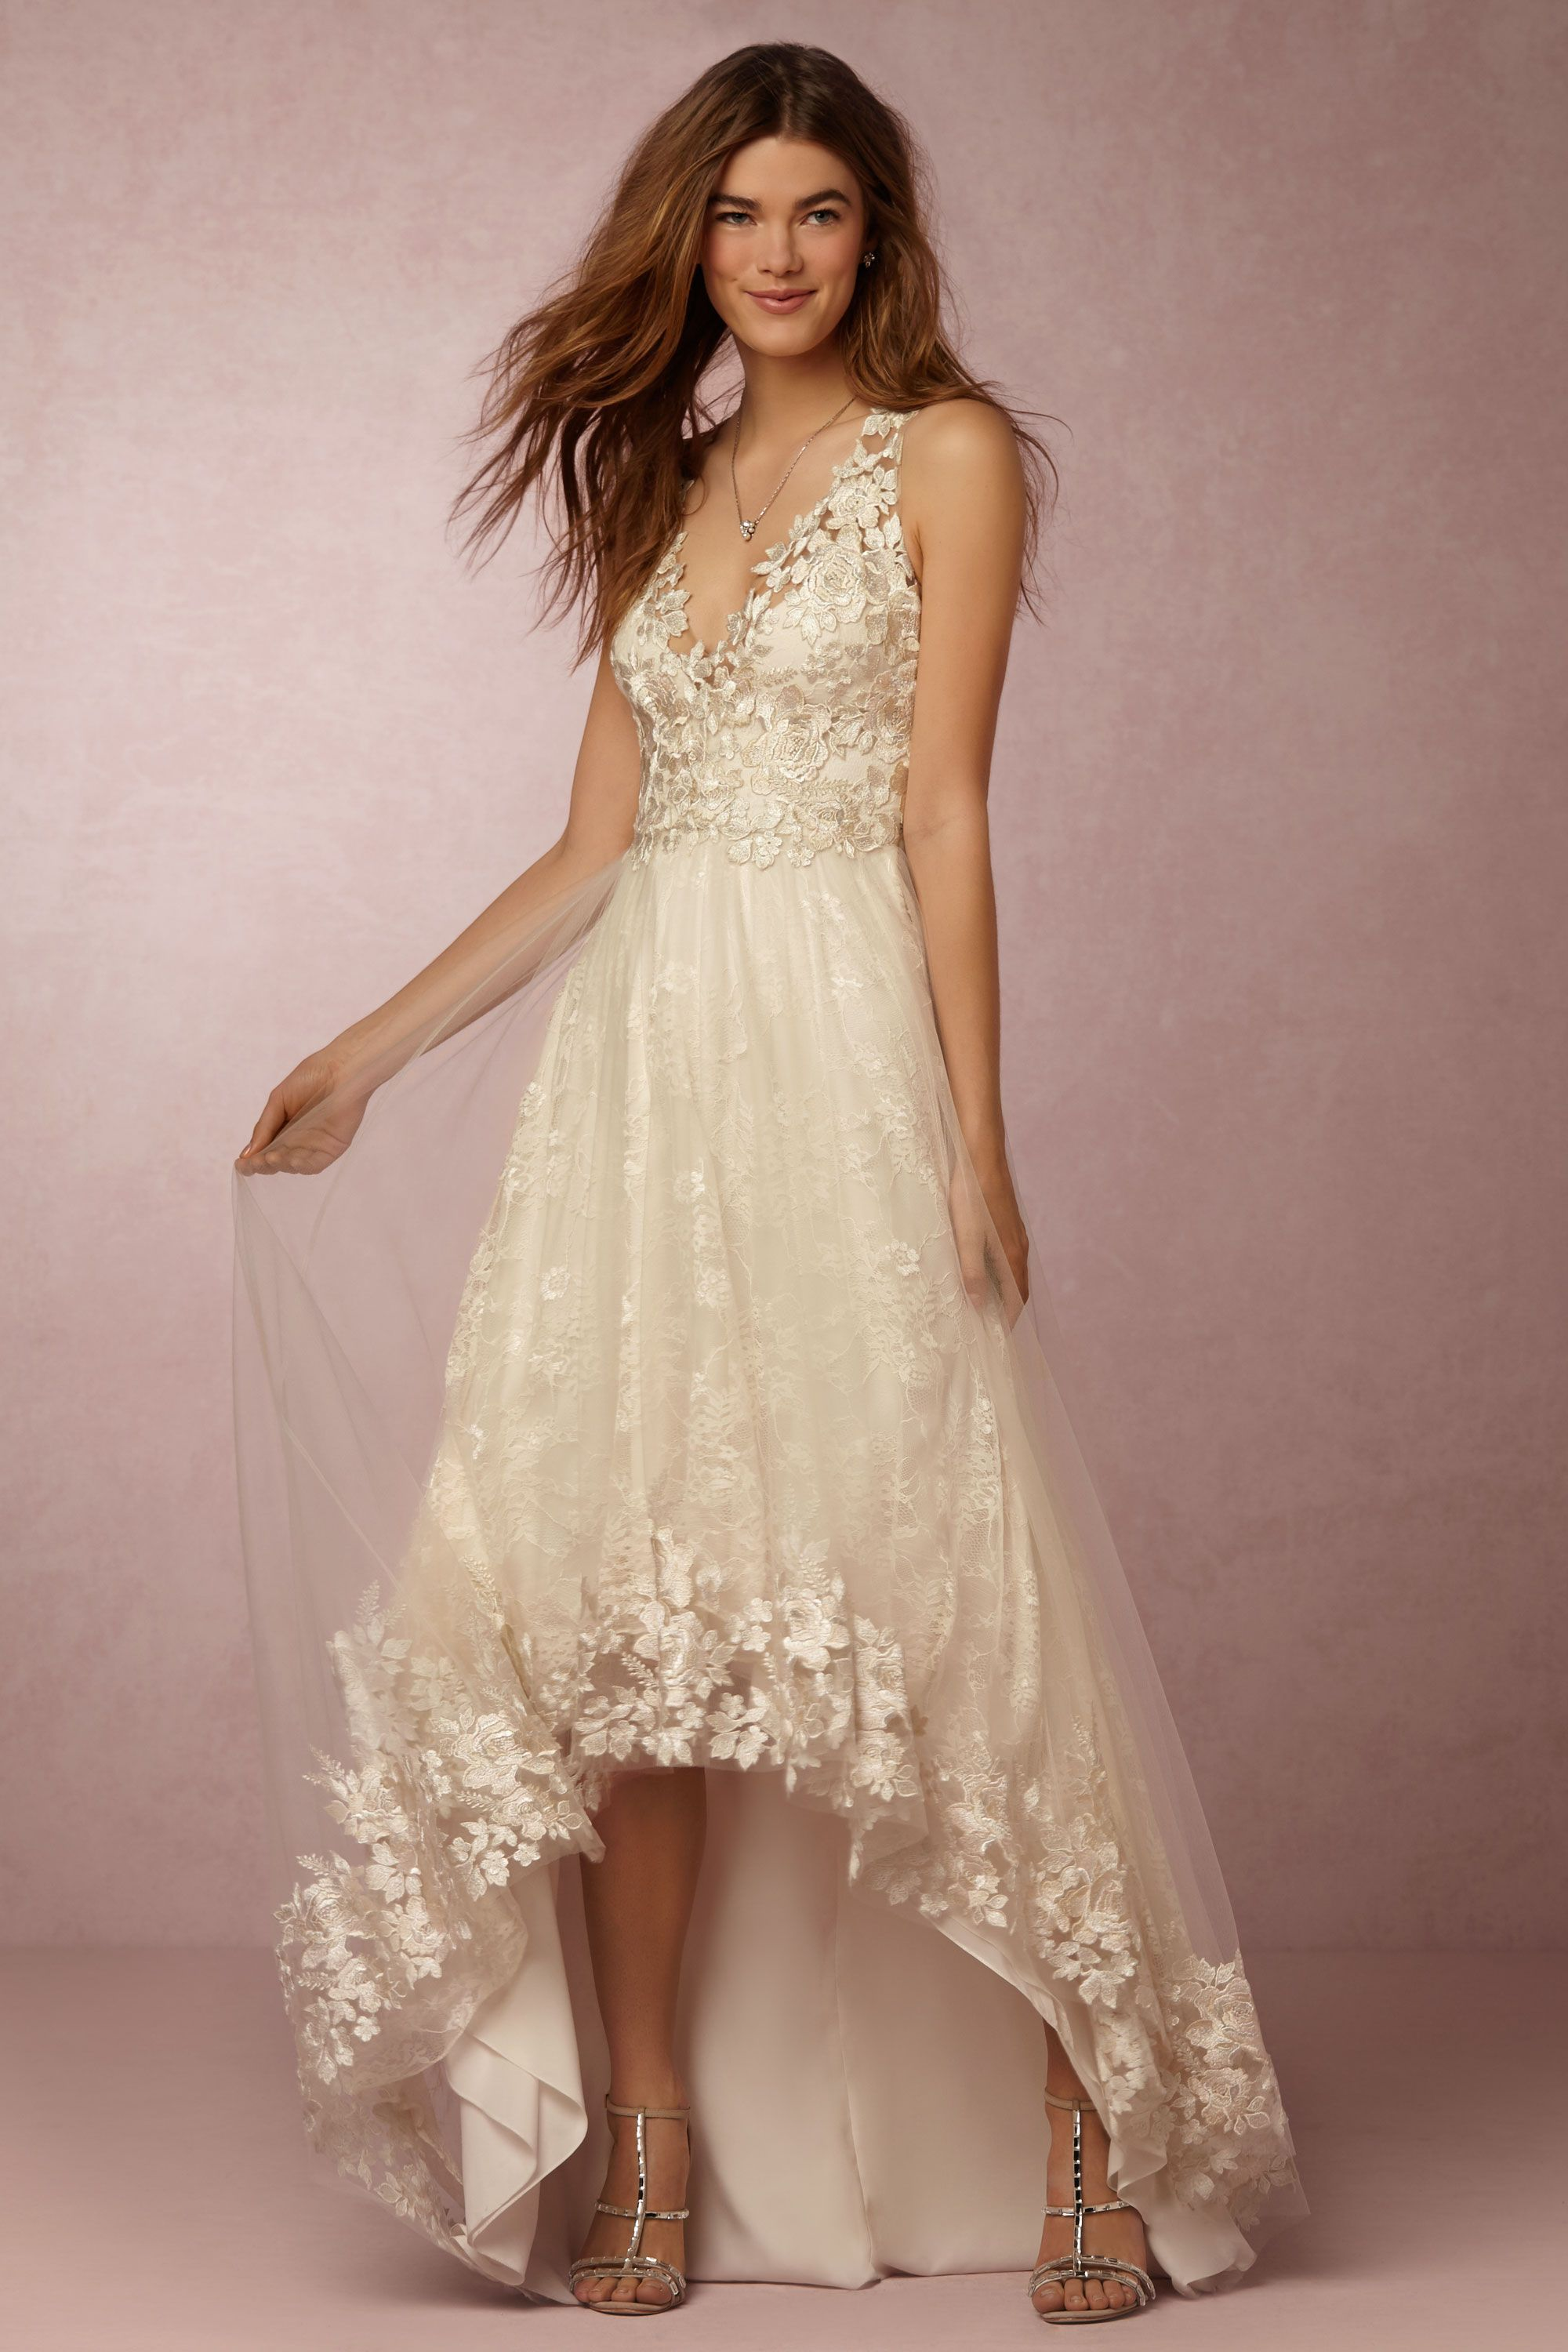 Opal Gown from @BHLDNsold at Anthropologie | unique wedding dress ...